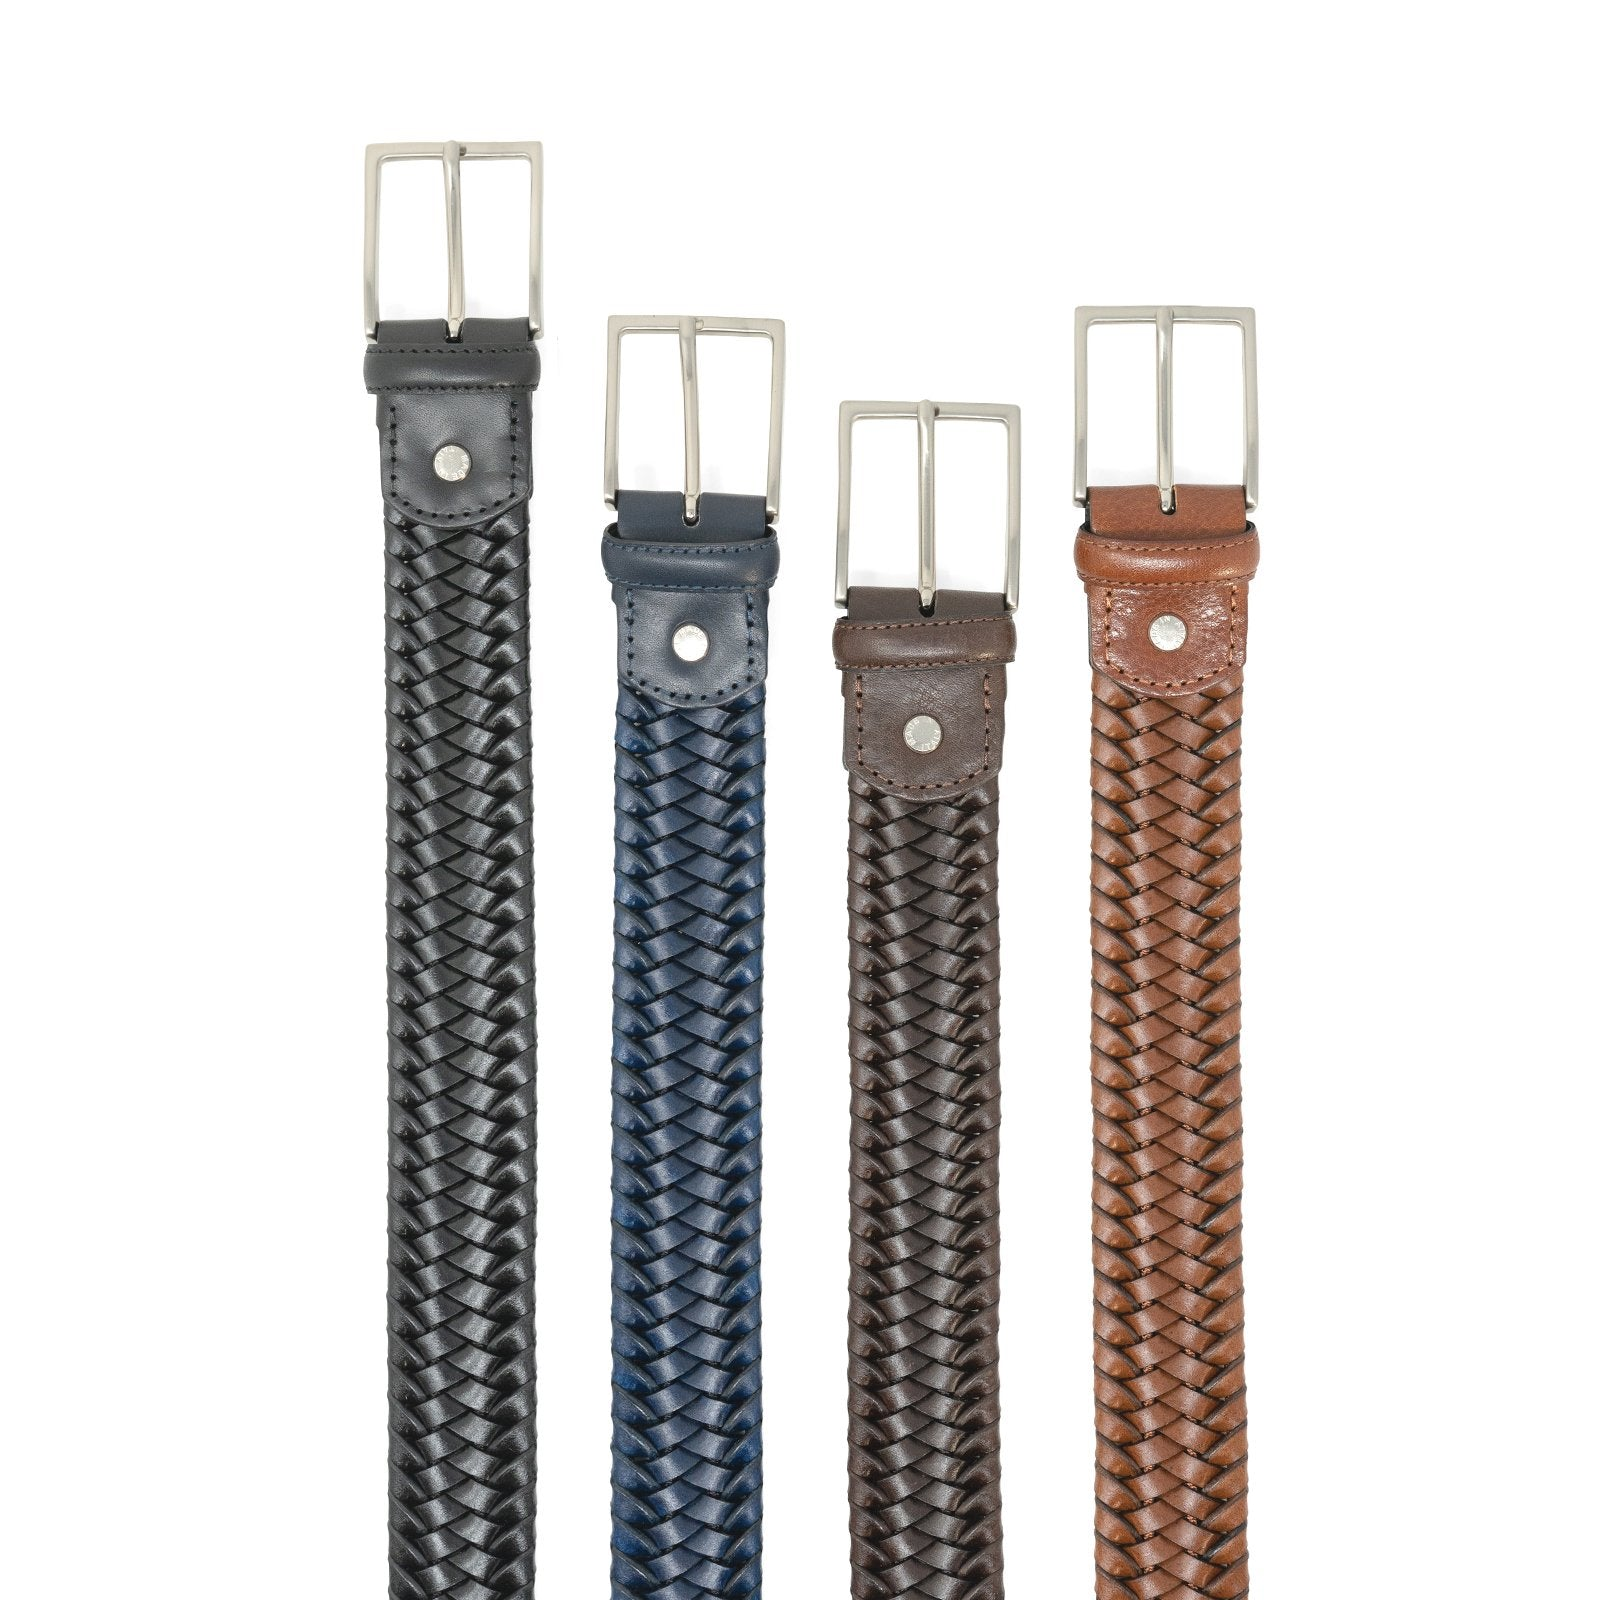 Unisex Leather Woven Belt in Black - Jennifer Tattanelli